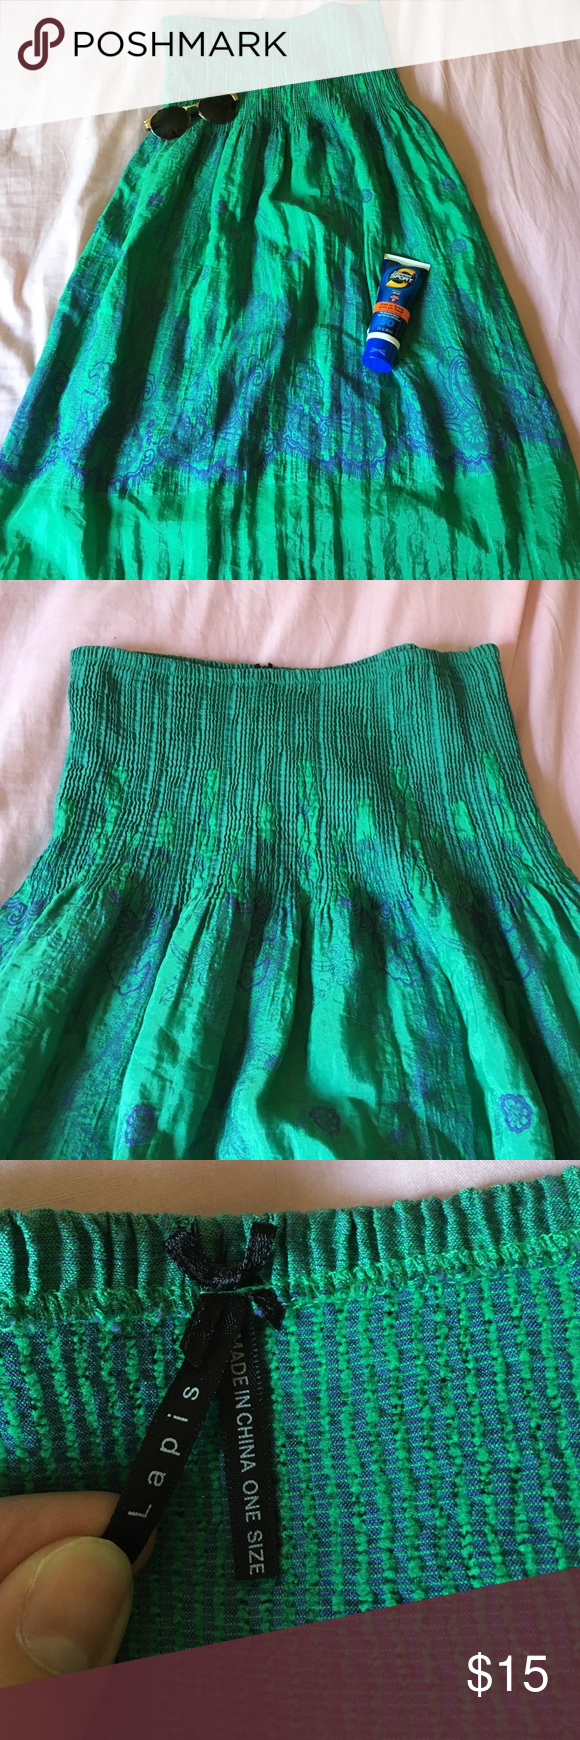 Green Sun Dress Brand new green and purple one size fits all strapless sun dress. Very cute and summery! Lapis Dresses Strapless